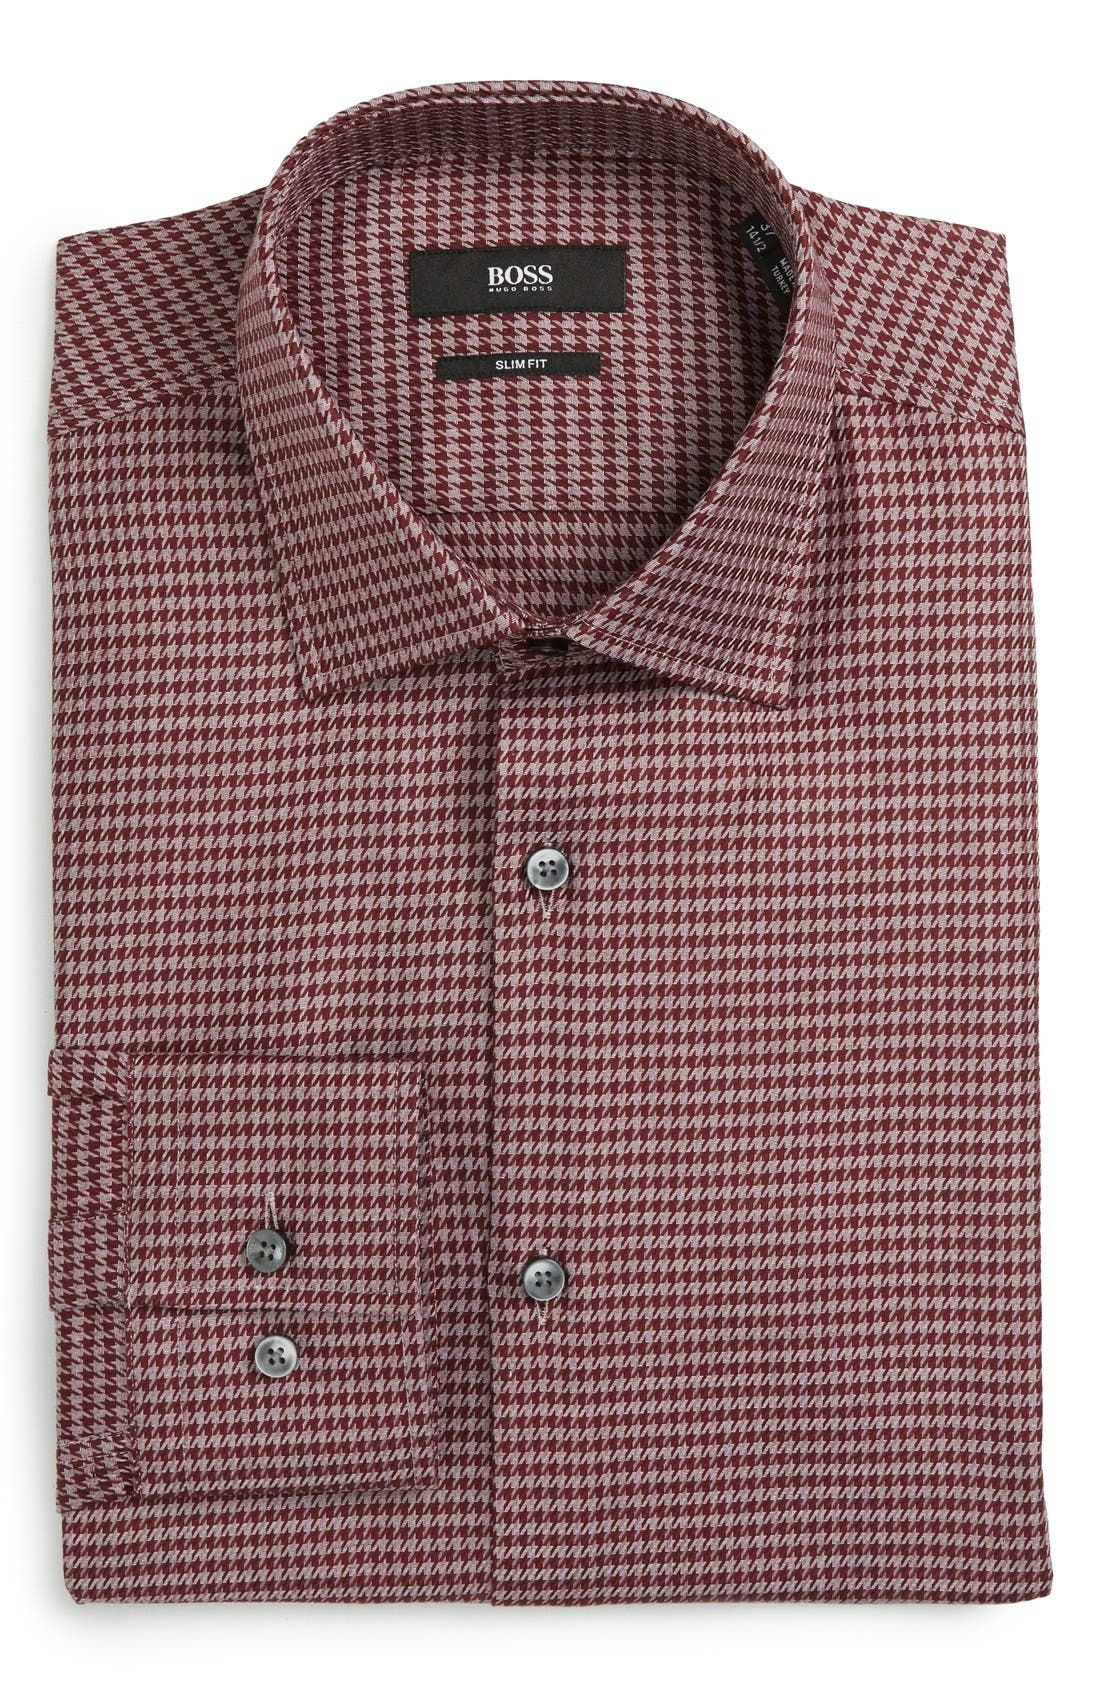 Alternate Image 1 Selected - BOSS Slim Fit Houndstooth Dress Shirt